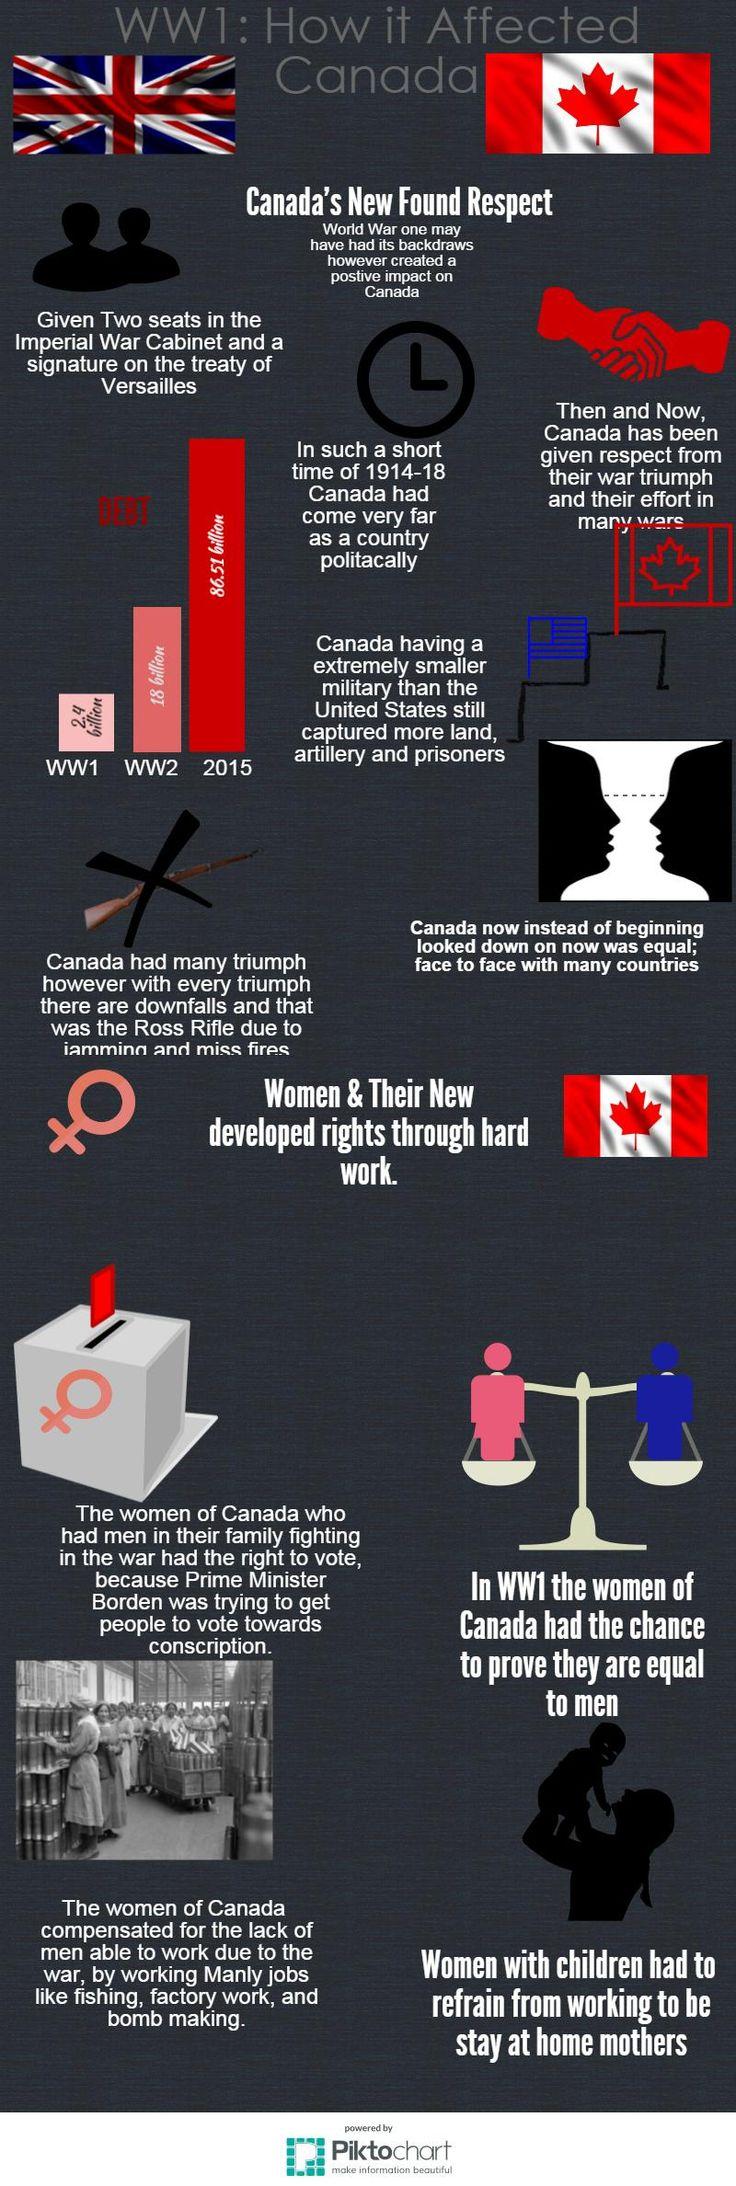 WWI Infographic Fall 2015